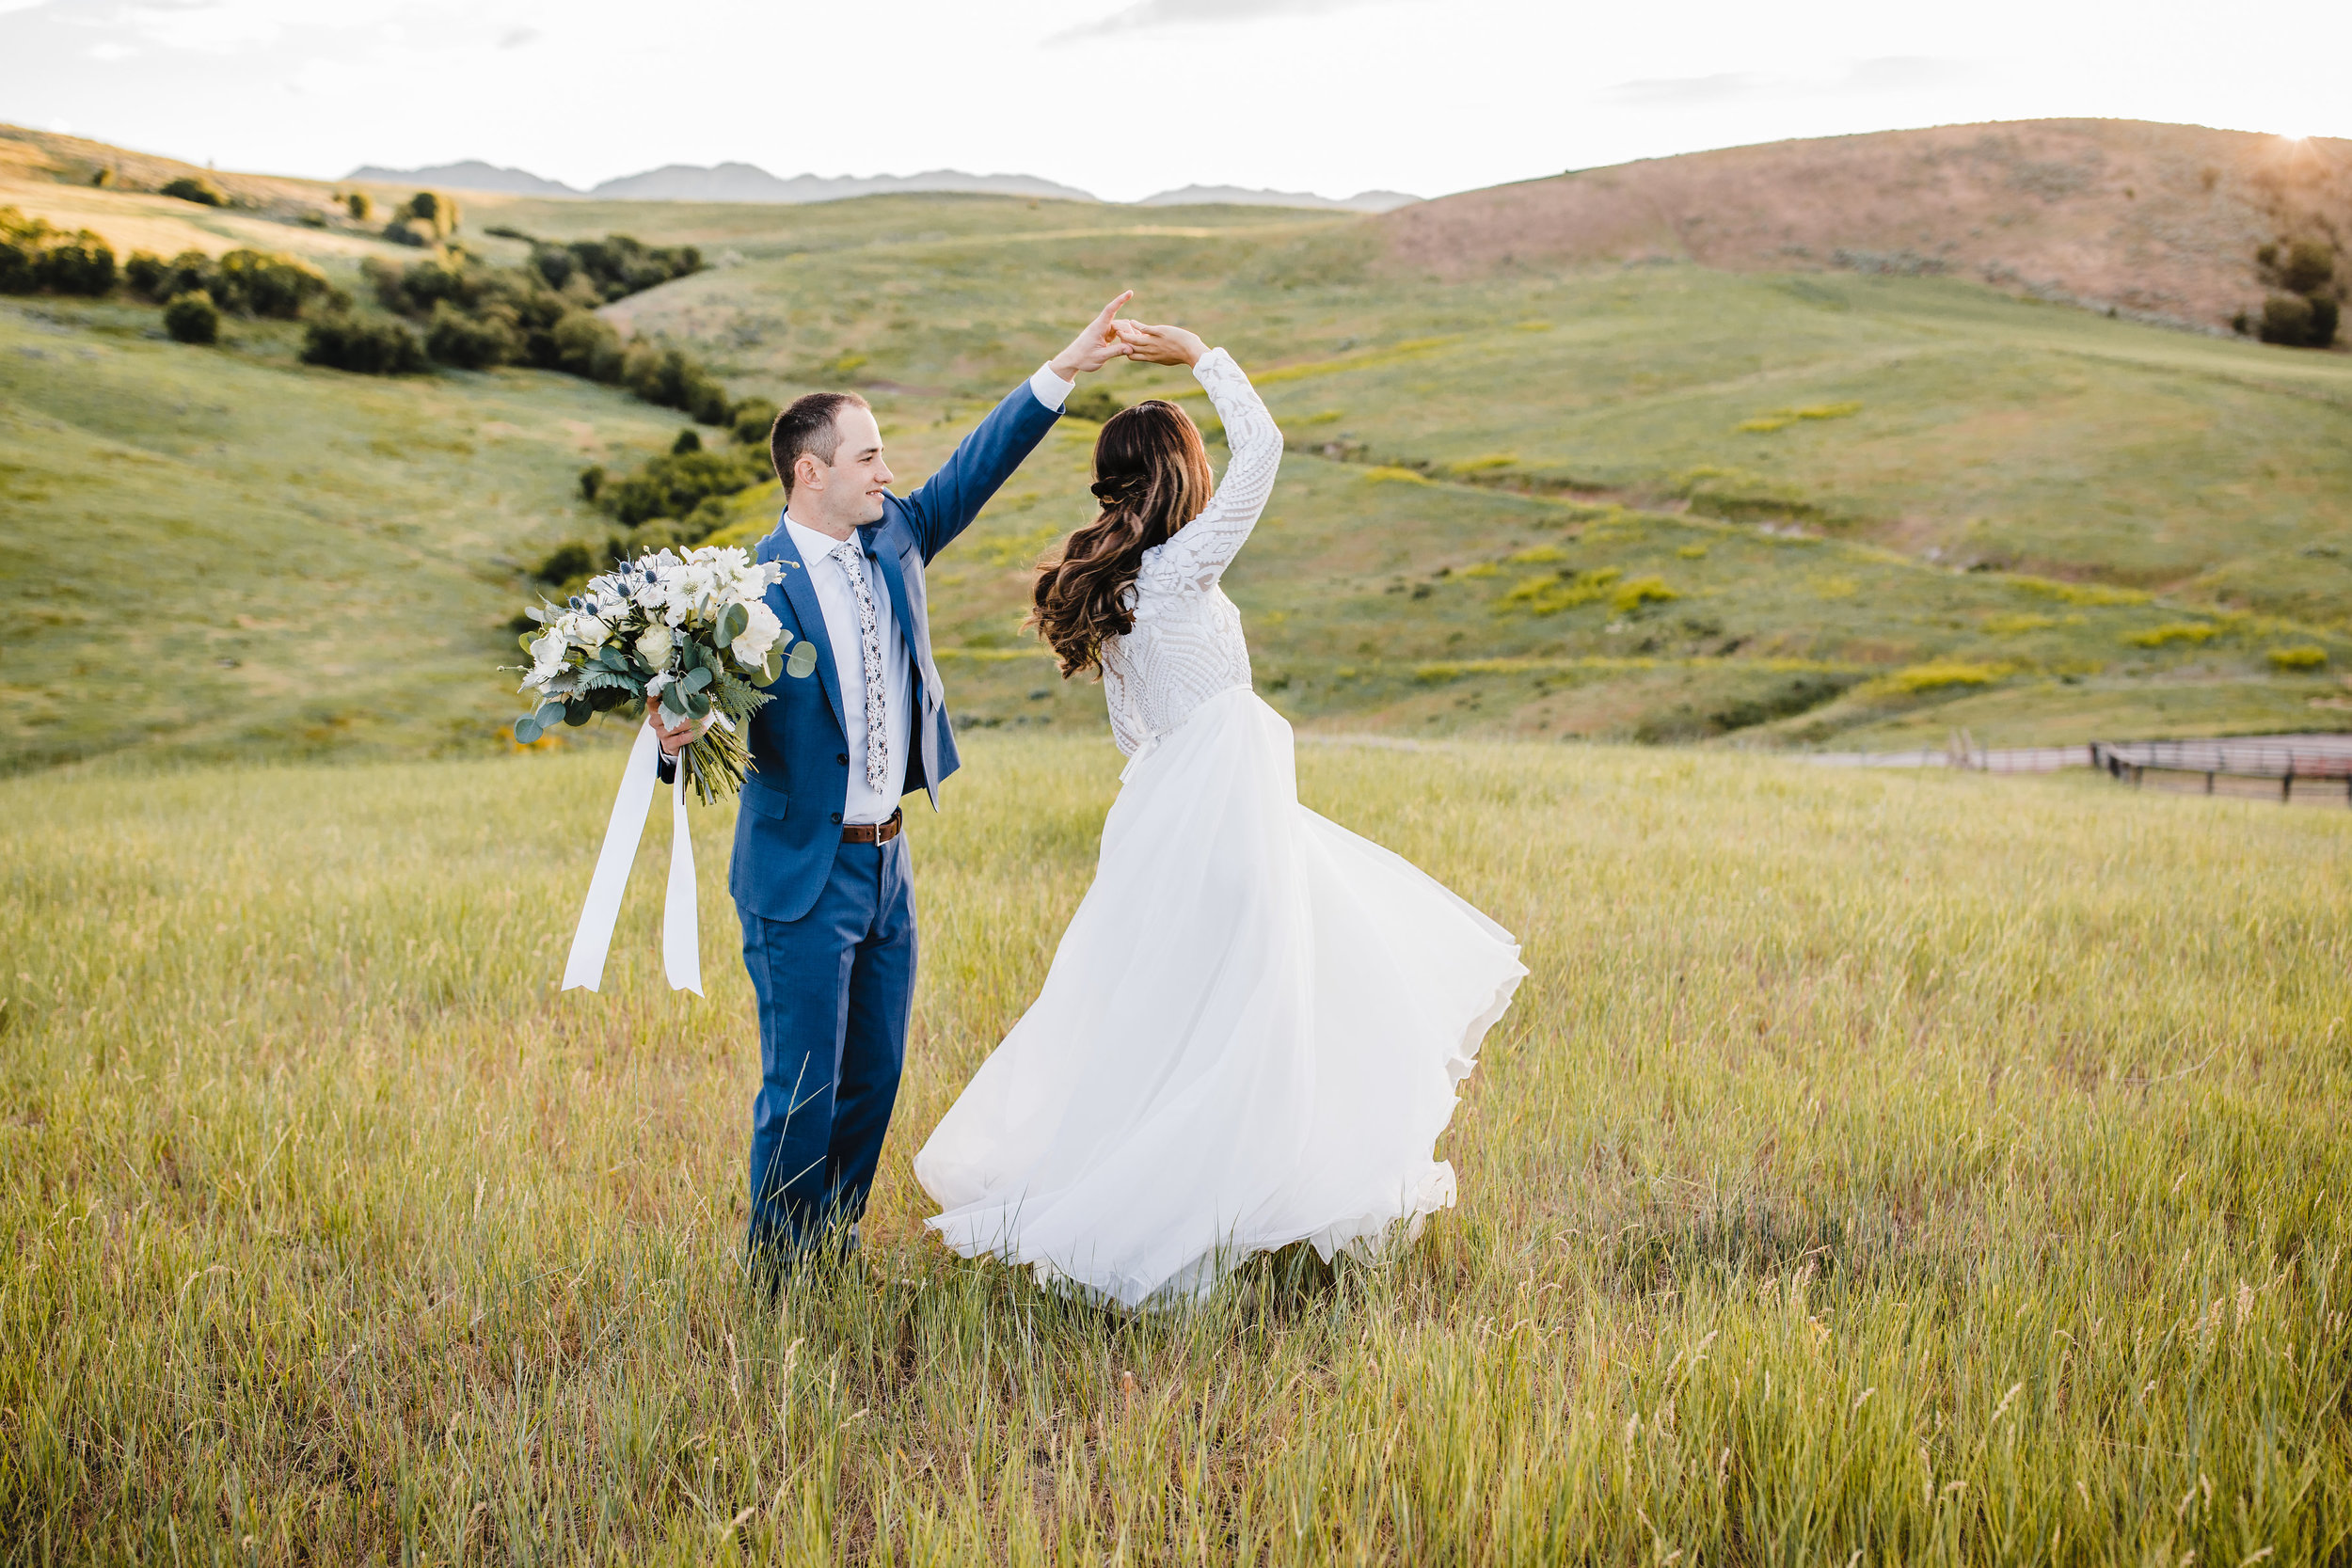 wedding photographer in logan utah spinning long veil field mountains